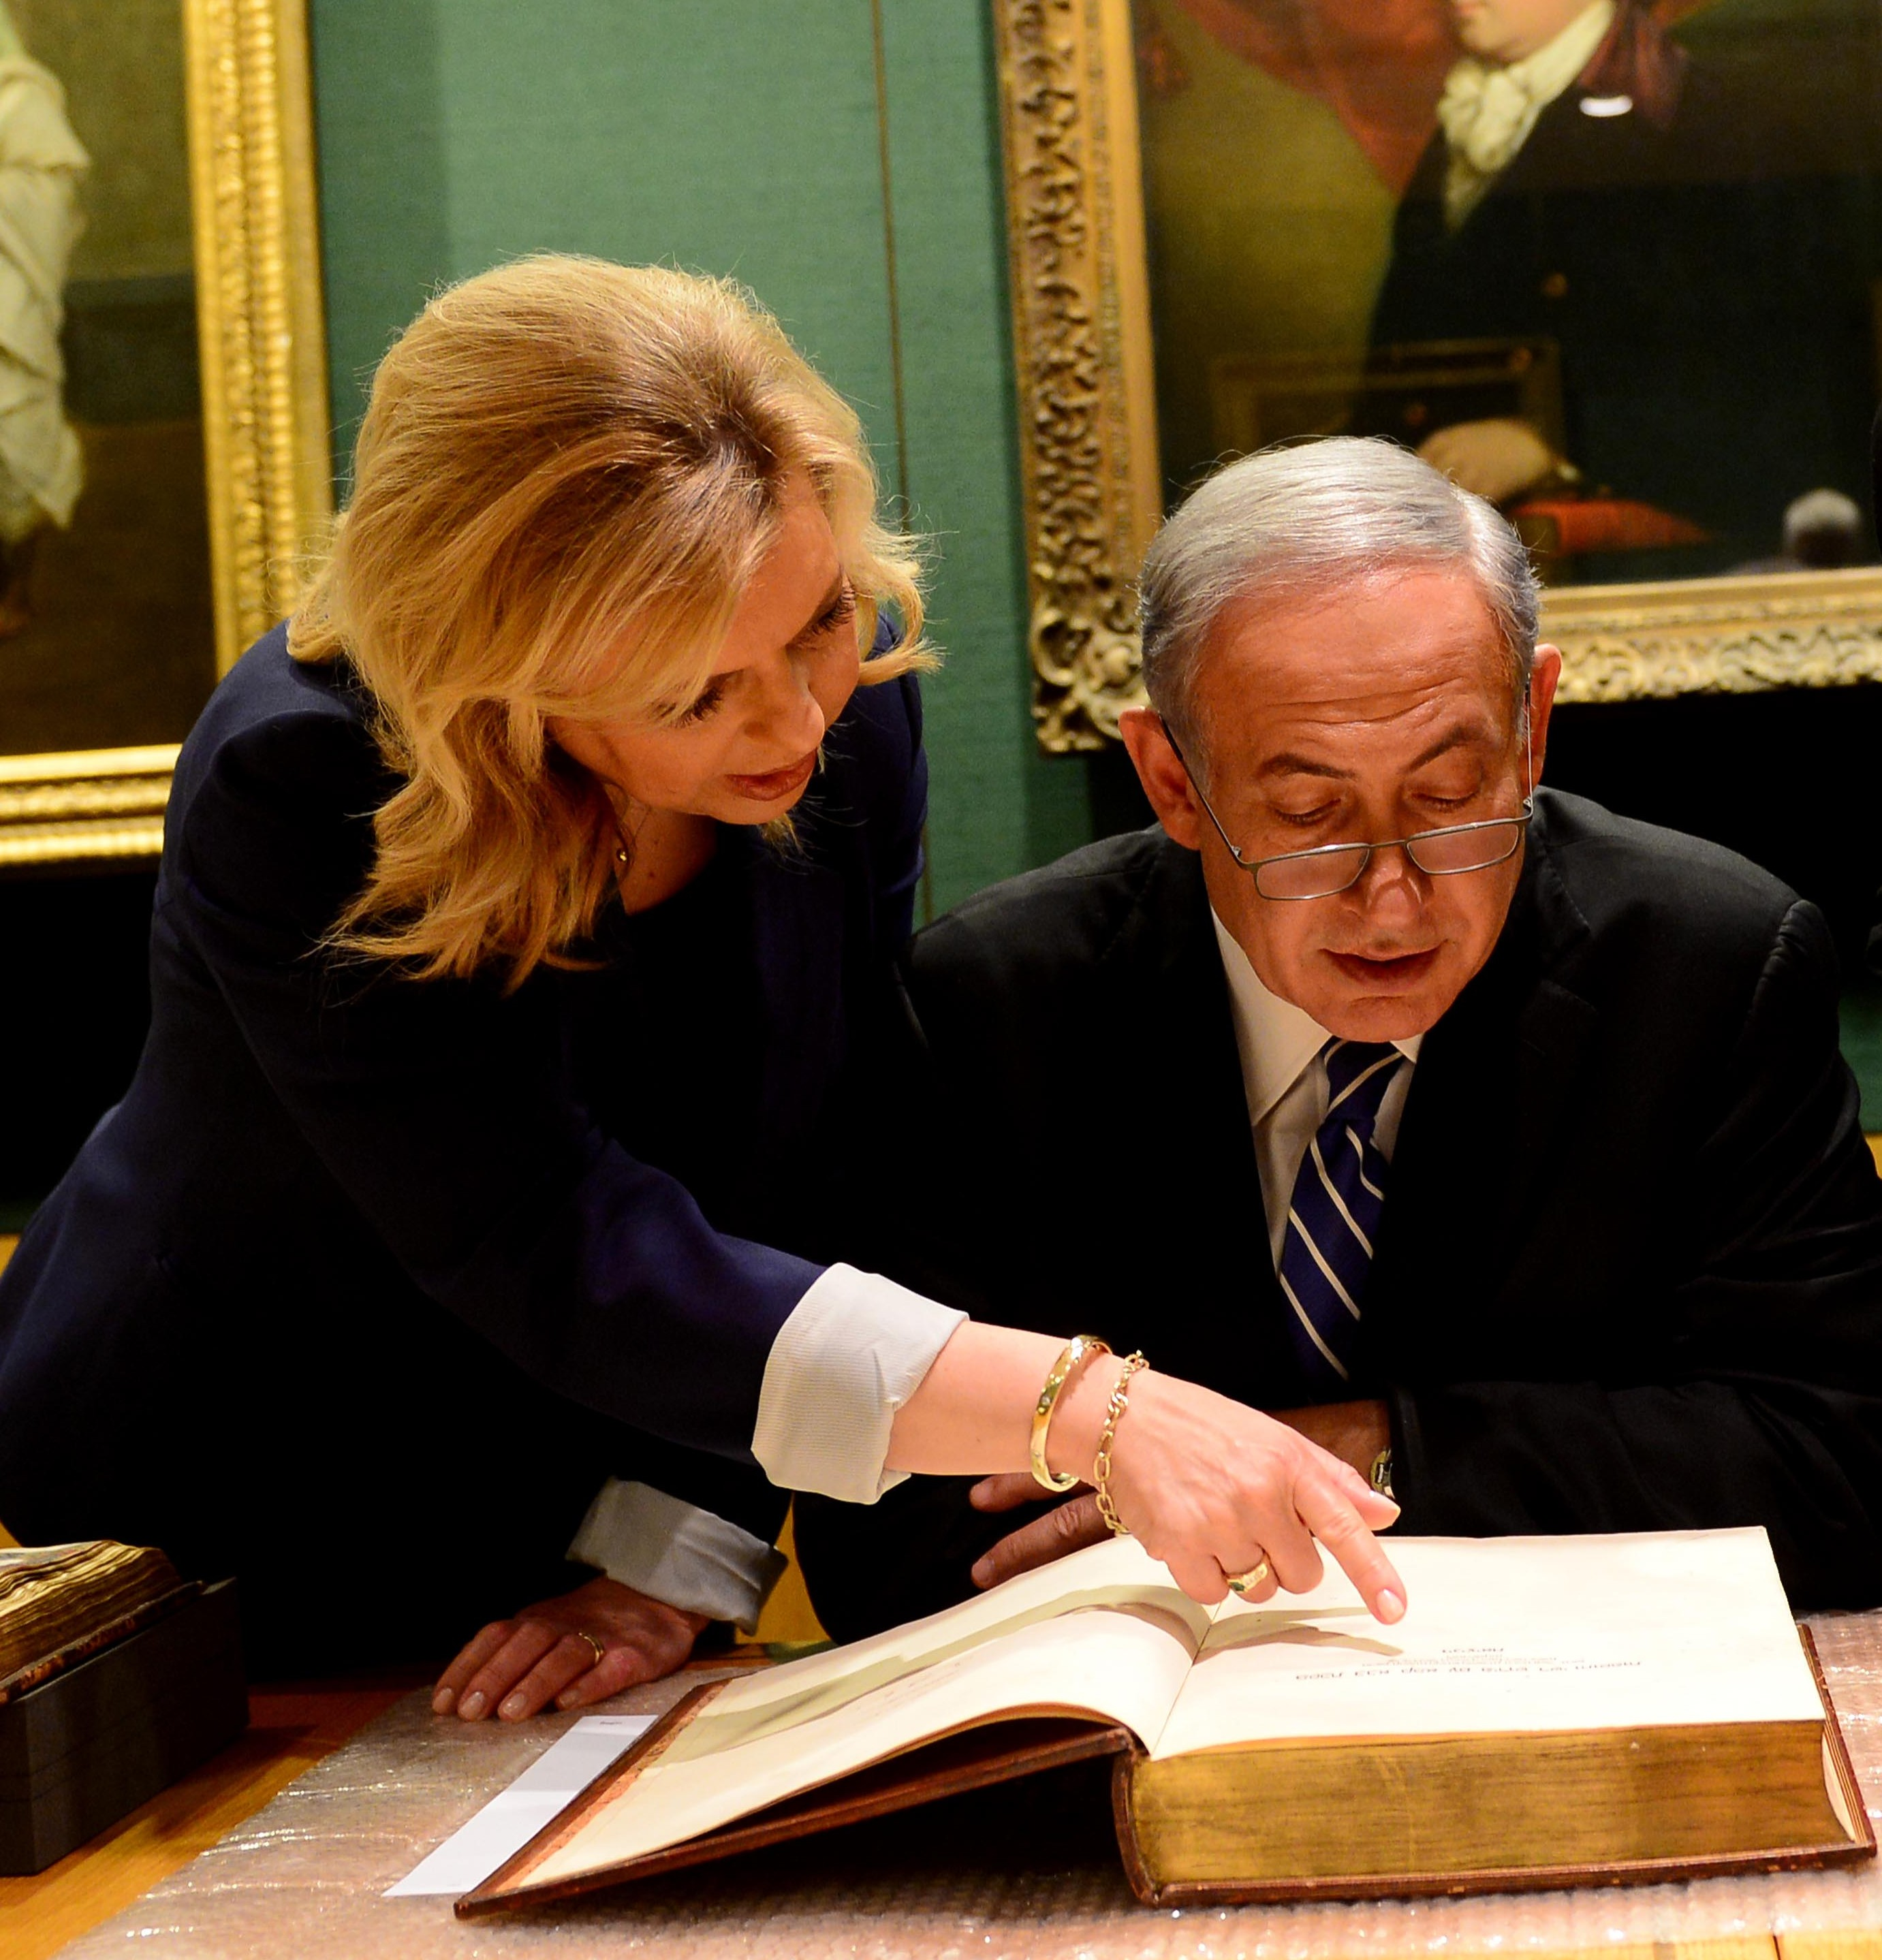 PM Netanyahu with his wife Sara at the National Library in London, they were shown the original Balfour Declaration (dated 2 November 1917) (Photo bi Avi Ohayon/GPO)